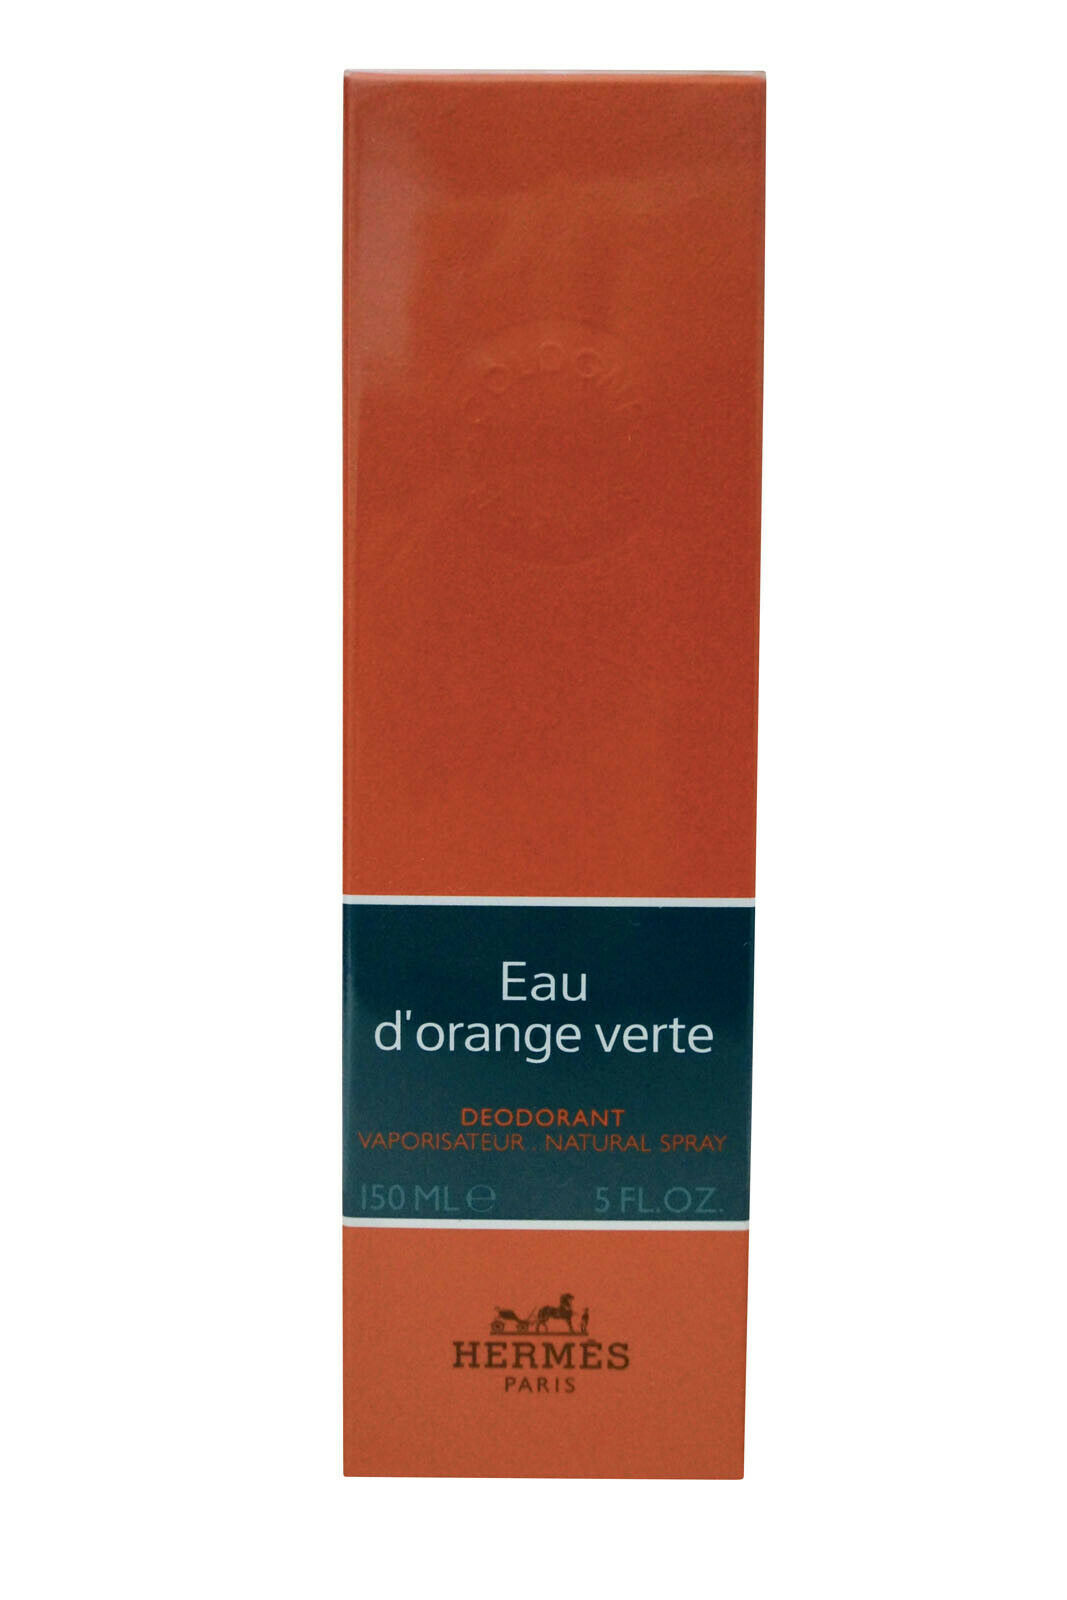 Hermes Eau d'Orange Verte Deodorant Natural Spray 5 OZ